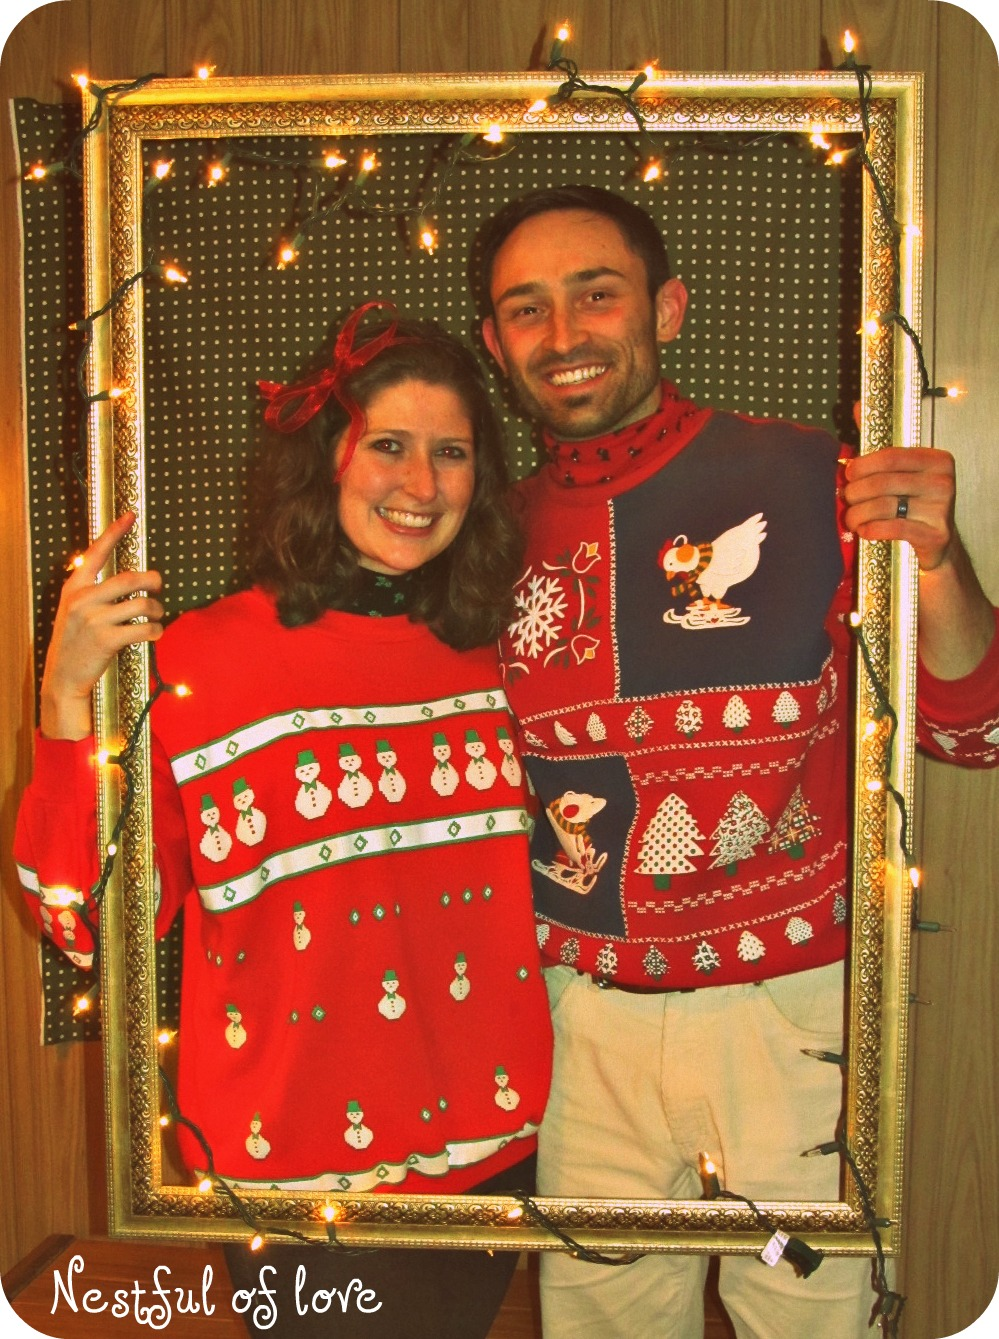 Ugly christmas sweater parties can paraphrased?